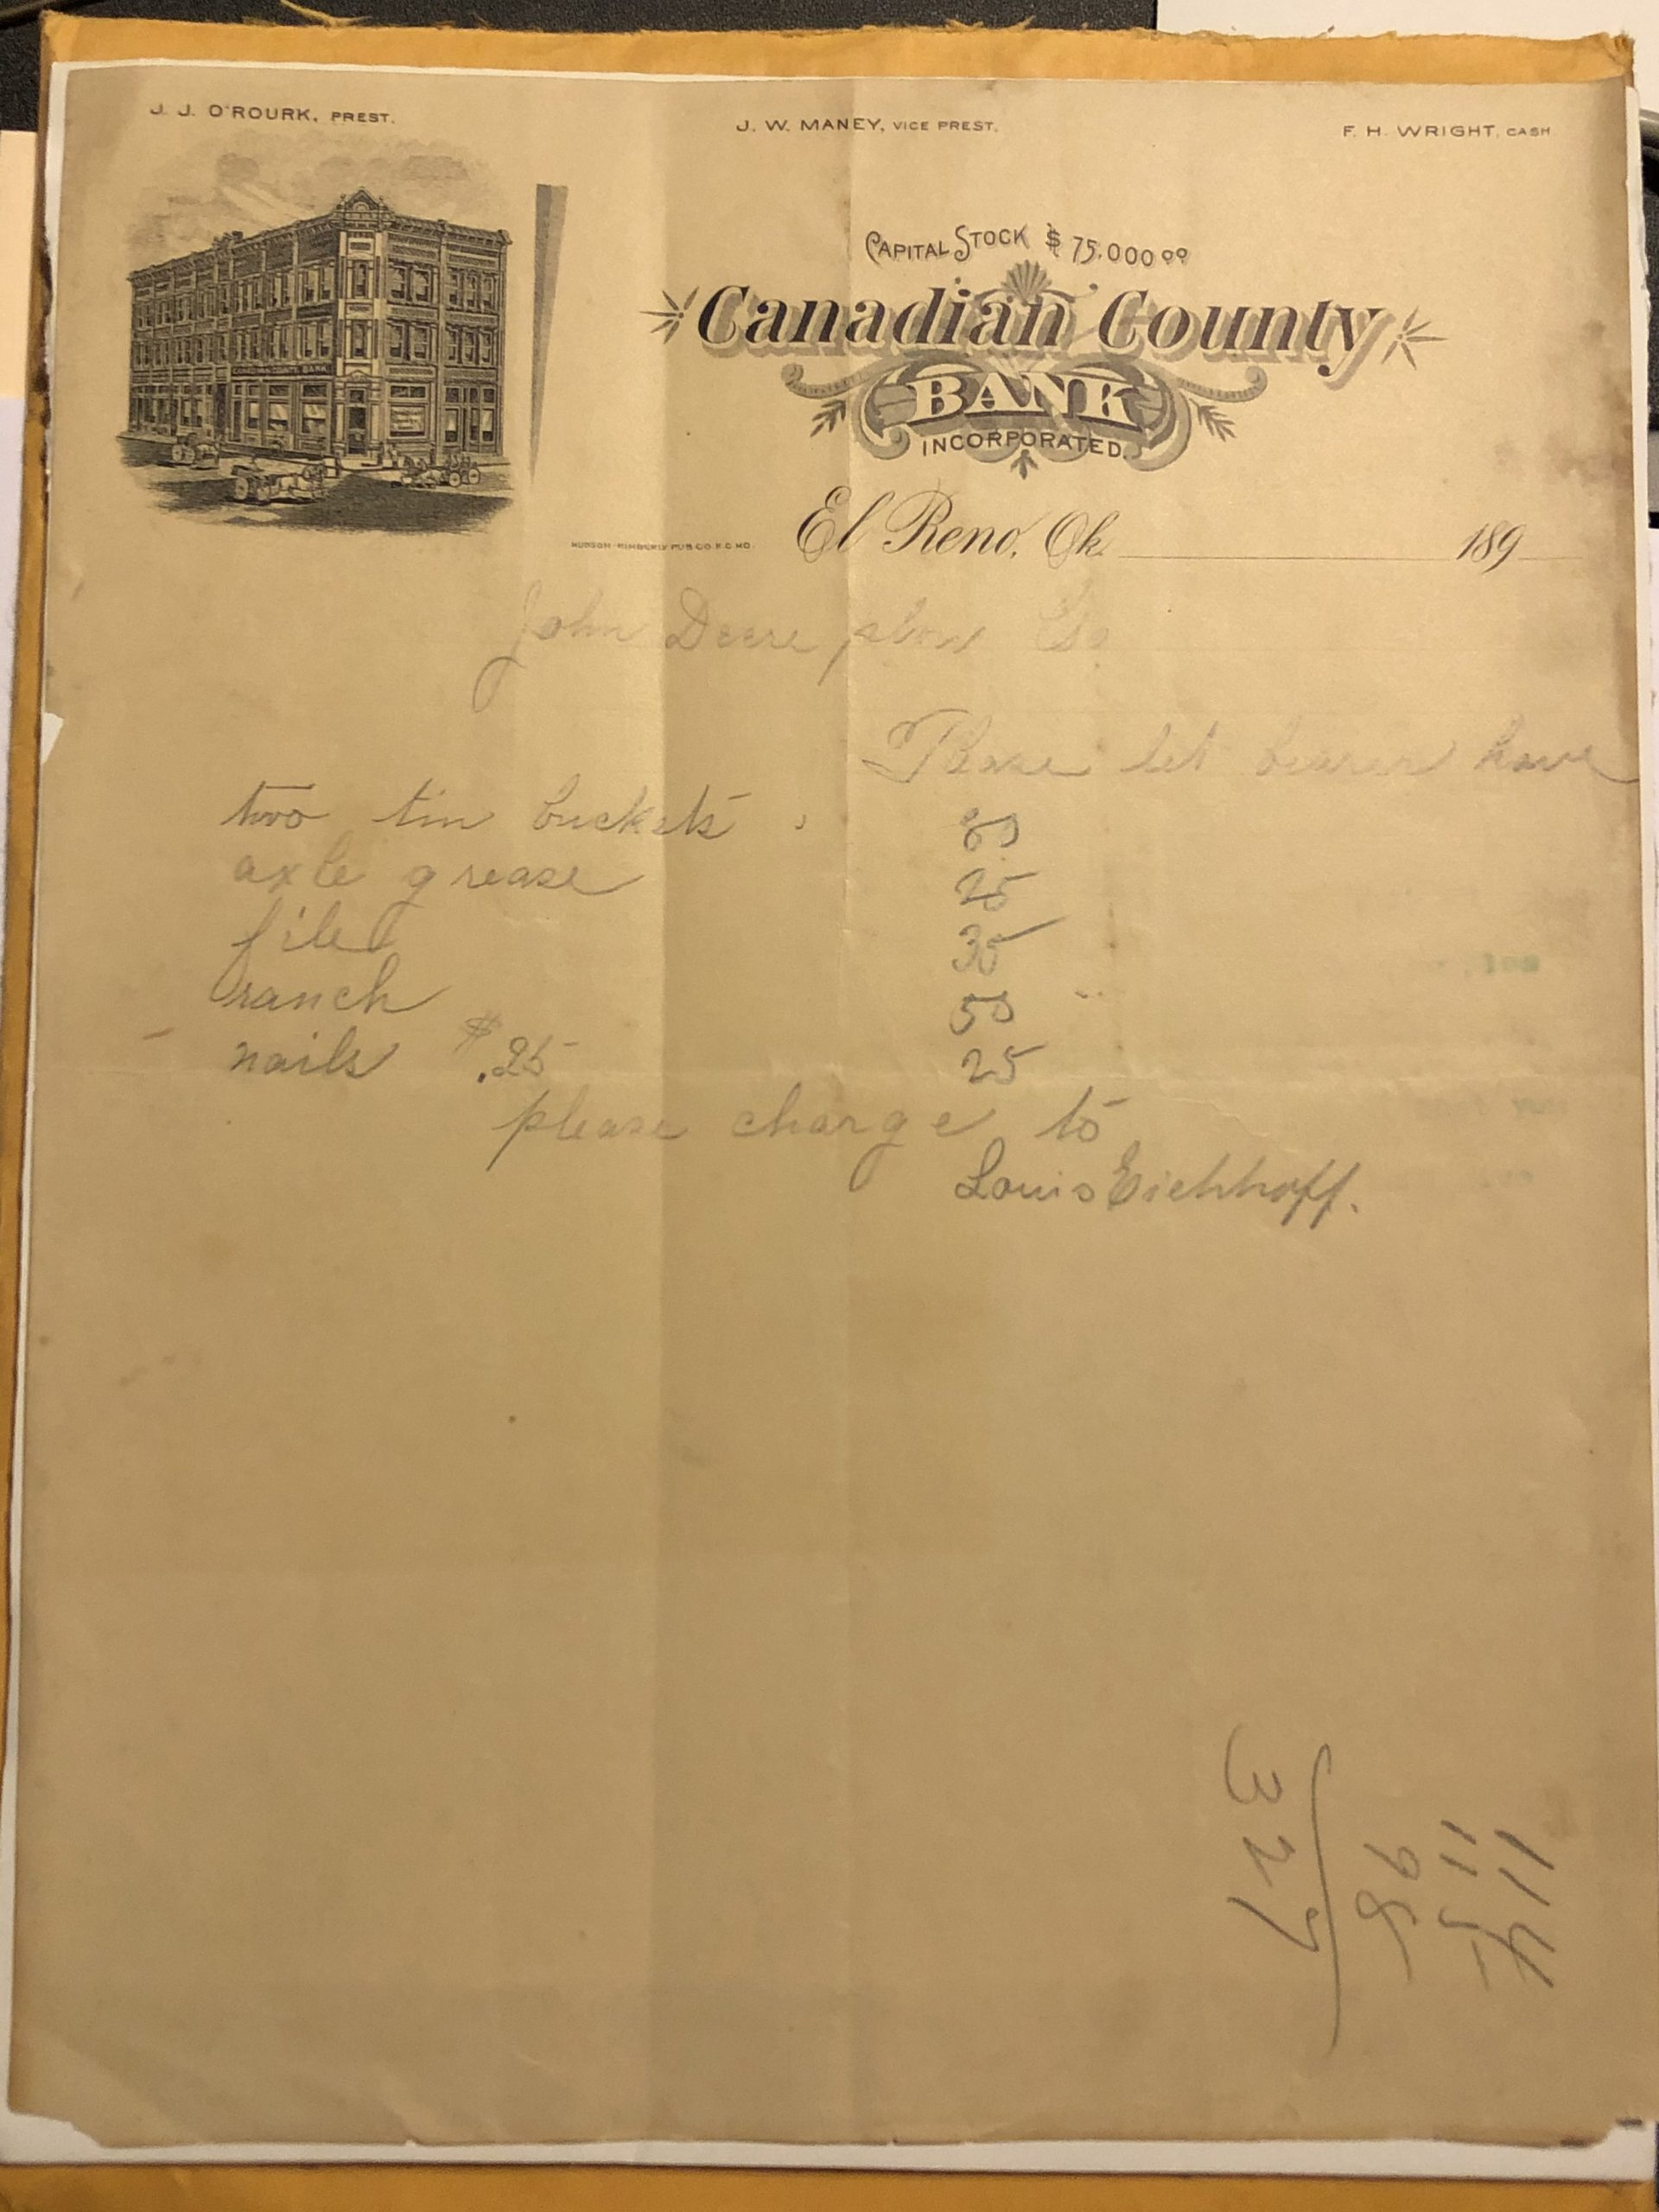 Canadian County Bank Letterhead Tommy Neathery Collection